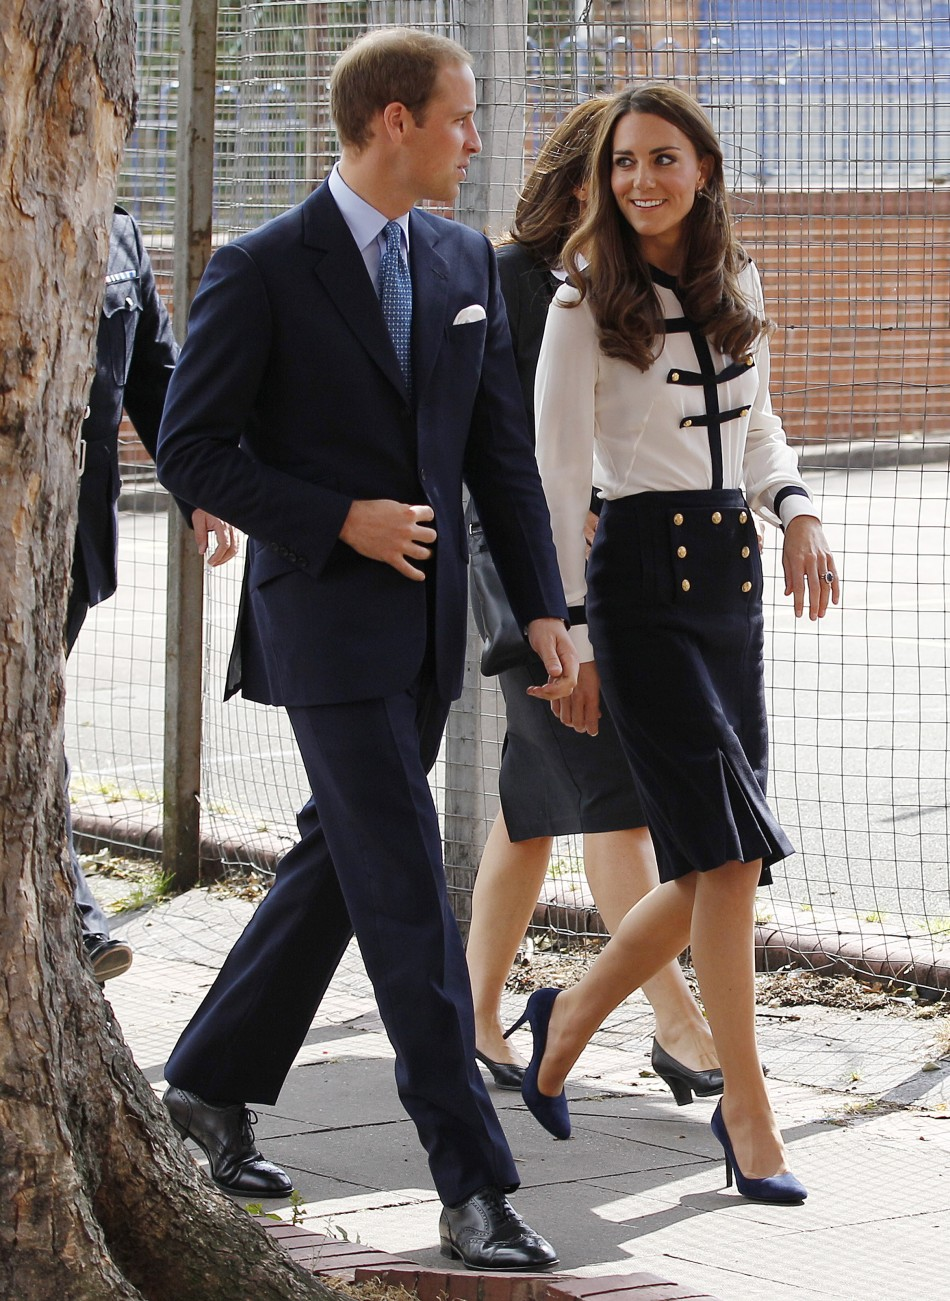 Nude tights for a royal occasion